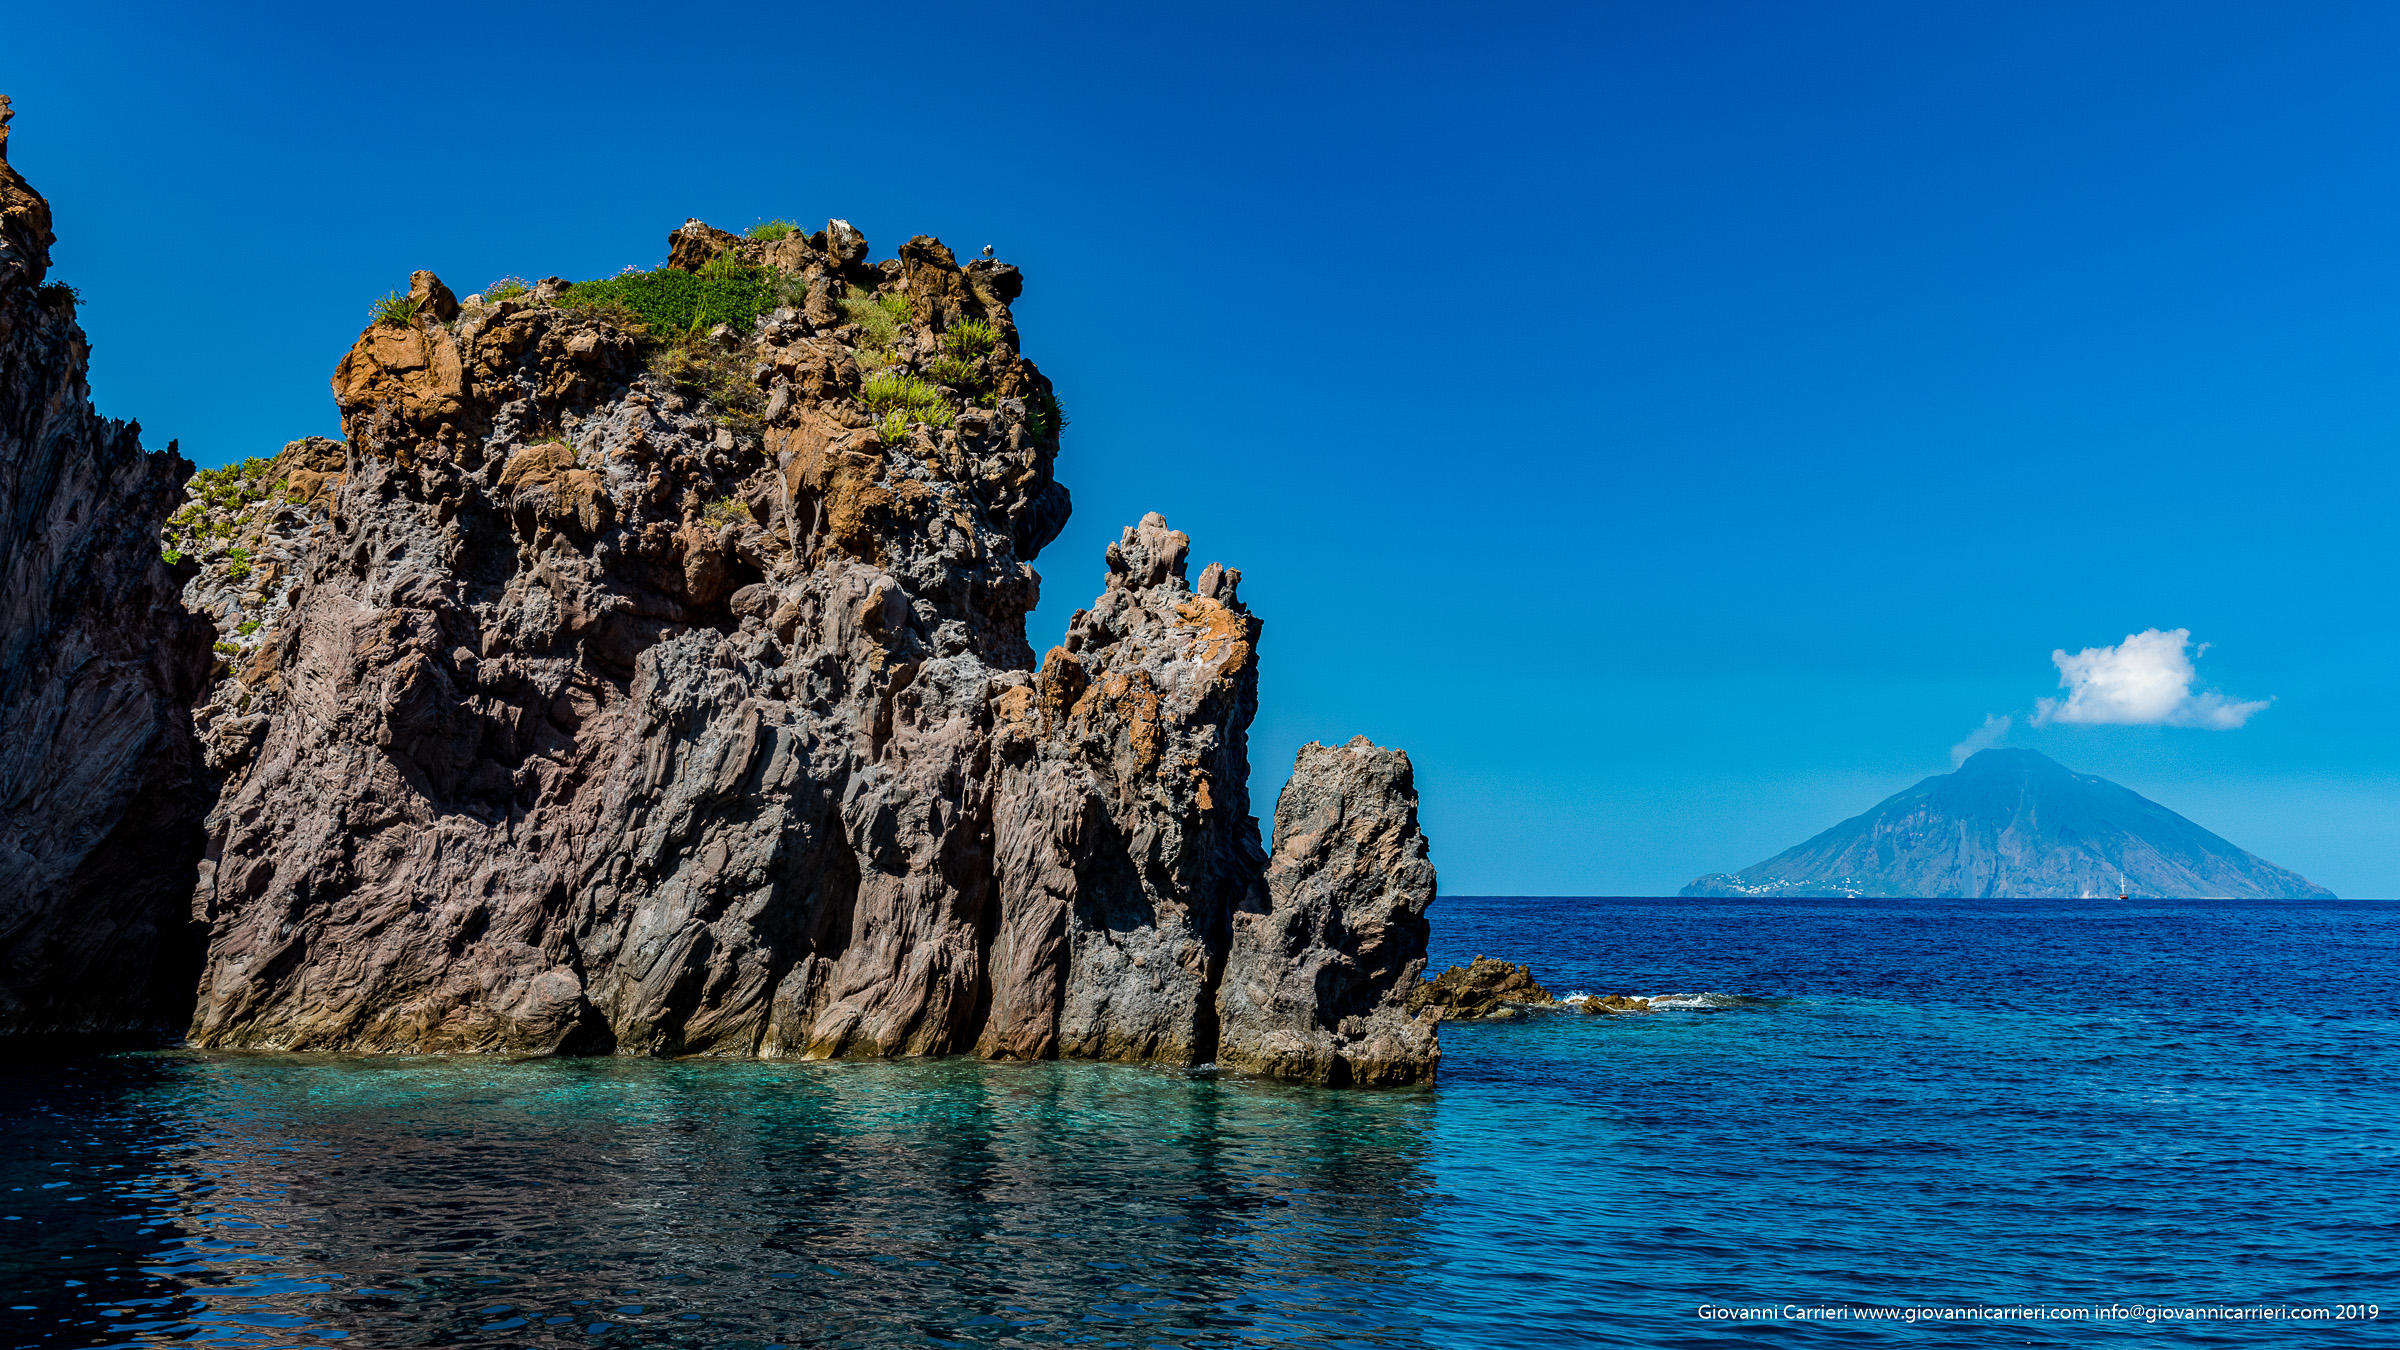 Photographs of Aeolian Islands